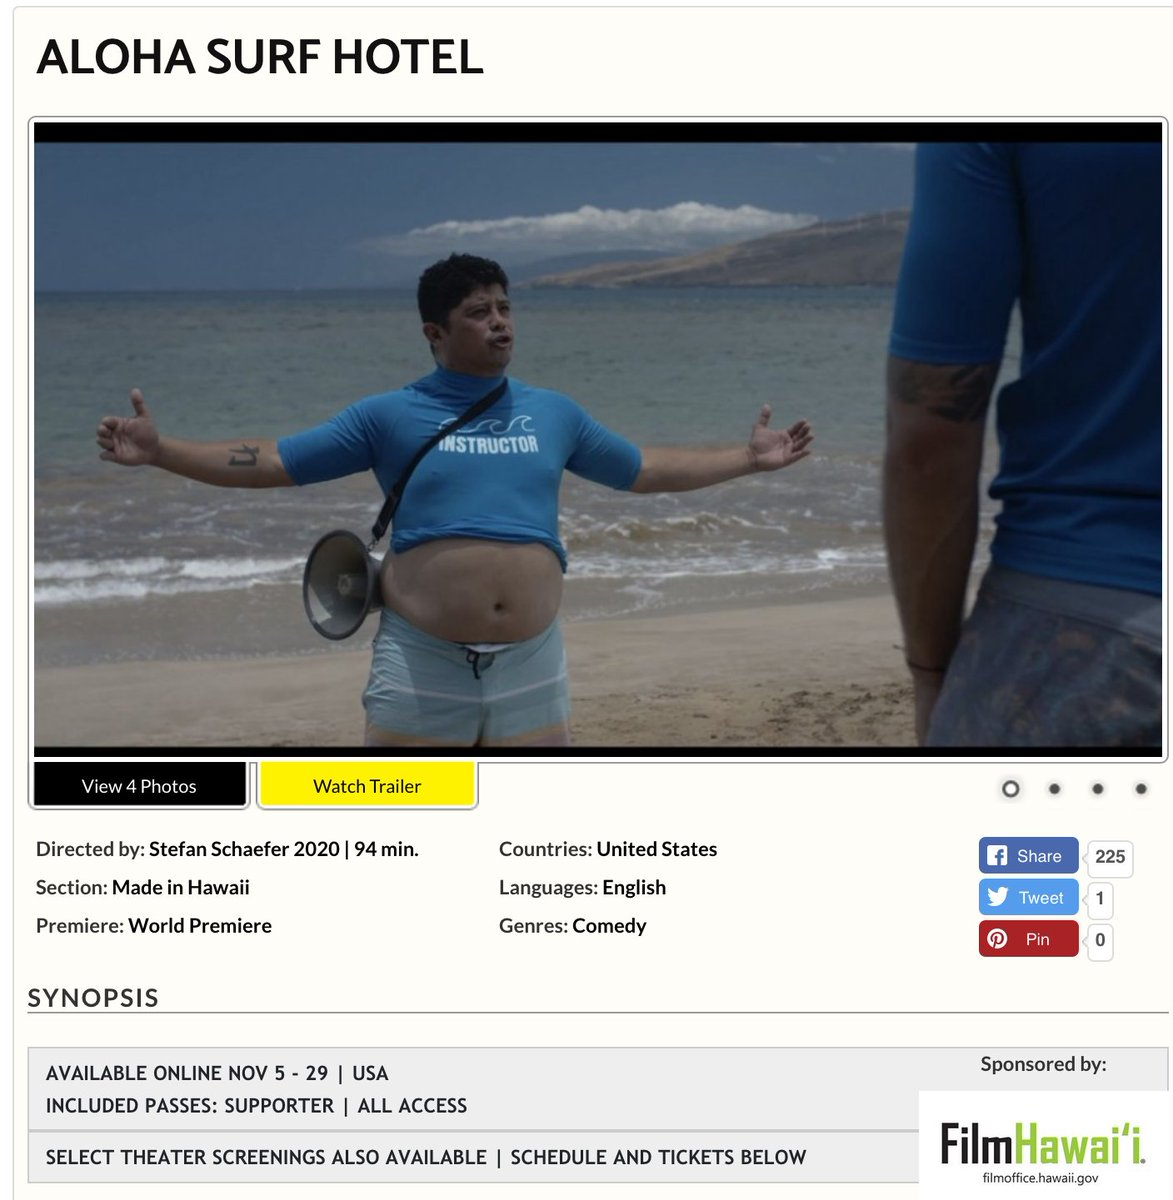 Happy to announce #ALOHASURFHOTEL will have its world premiere on Nov. 20th at the Hawai'i Int'l Film Festival. DIR. @stefancschaefer Starring: @AUGIET and @TaianaTully and the great @BranscombeRichmond   #alohasurfhotelmovie #worldpremiereonprime